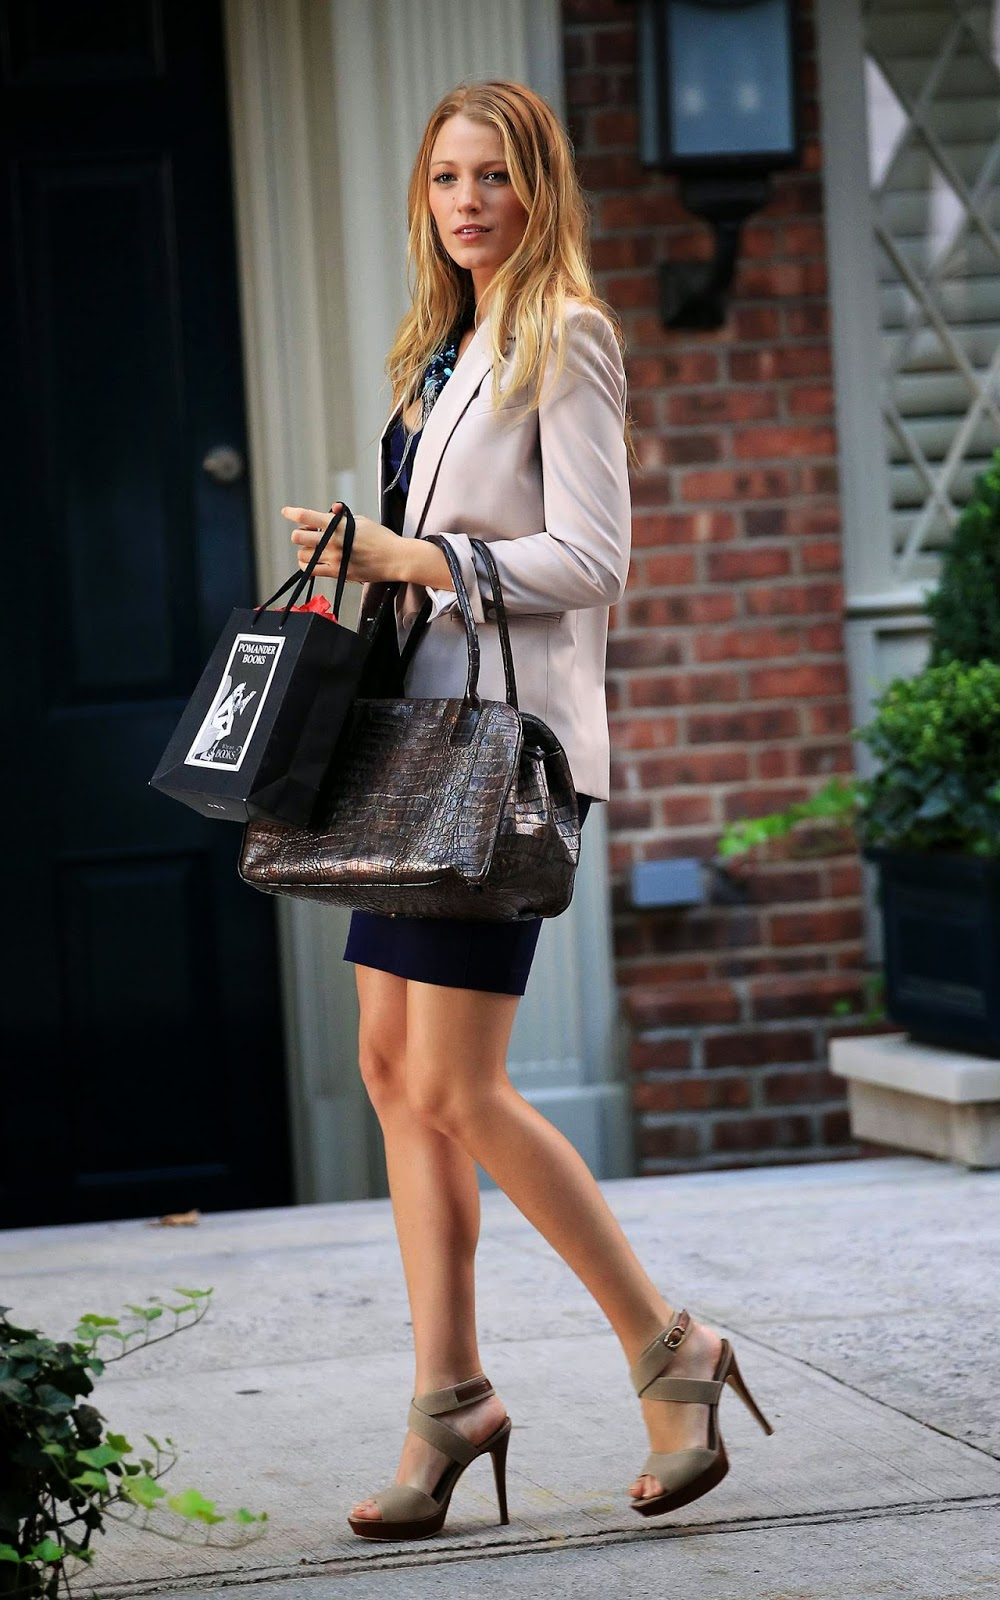 Lost in daydreams a fashion and lifestyle blog style icons blake lively Fashion style girl tumblr 2015